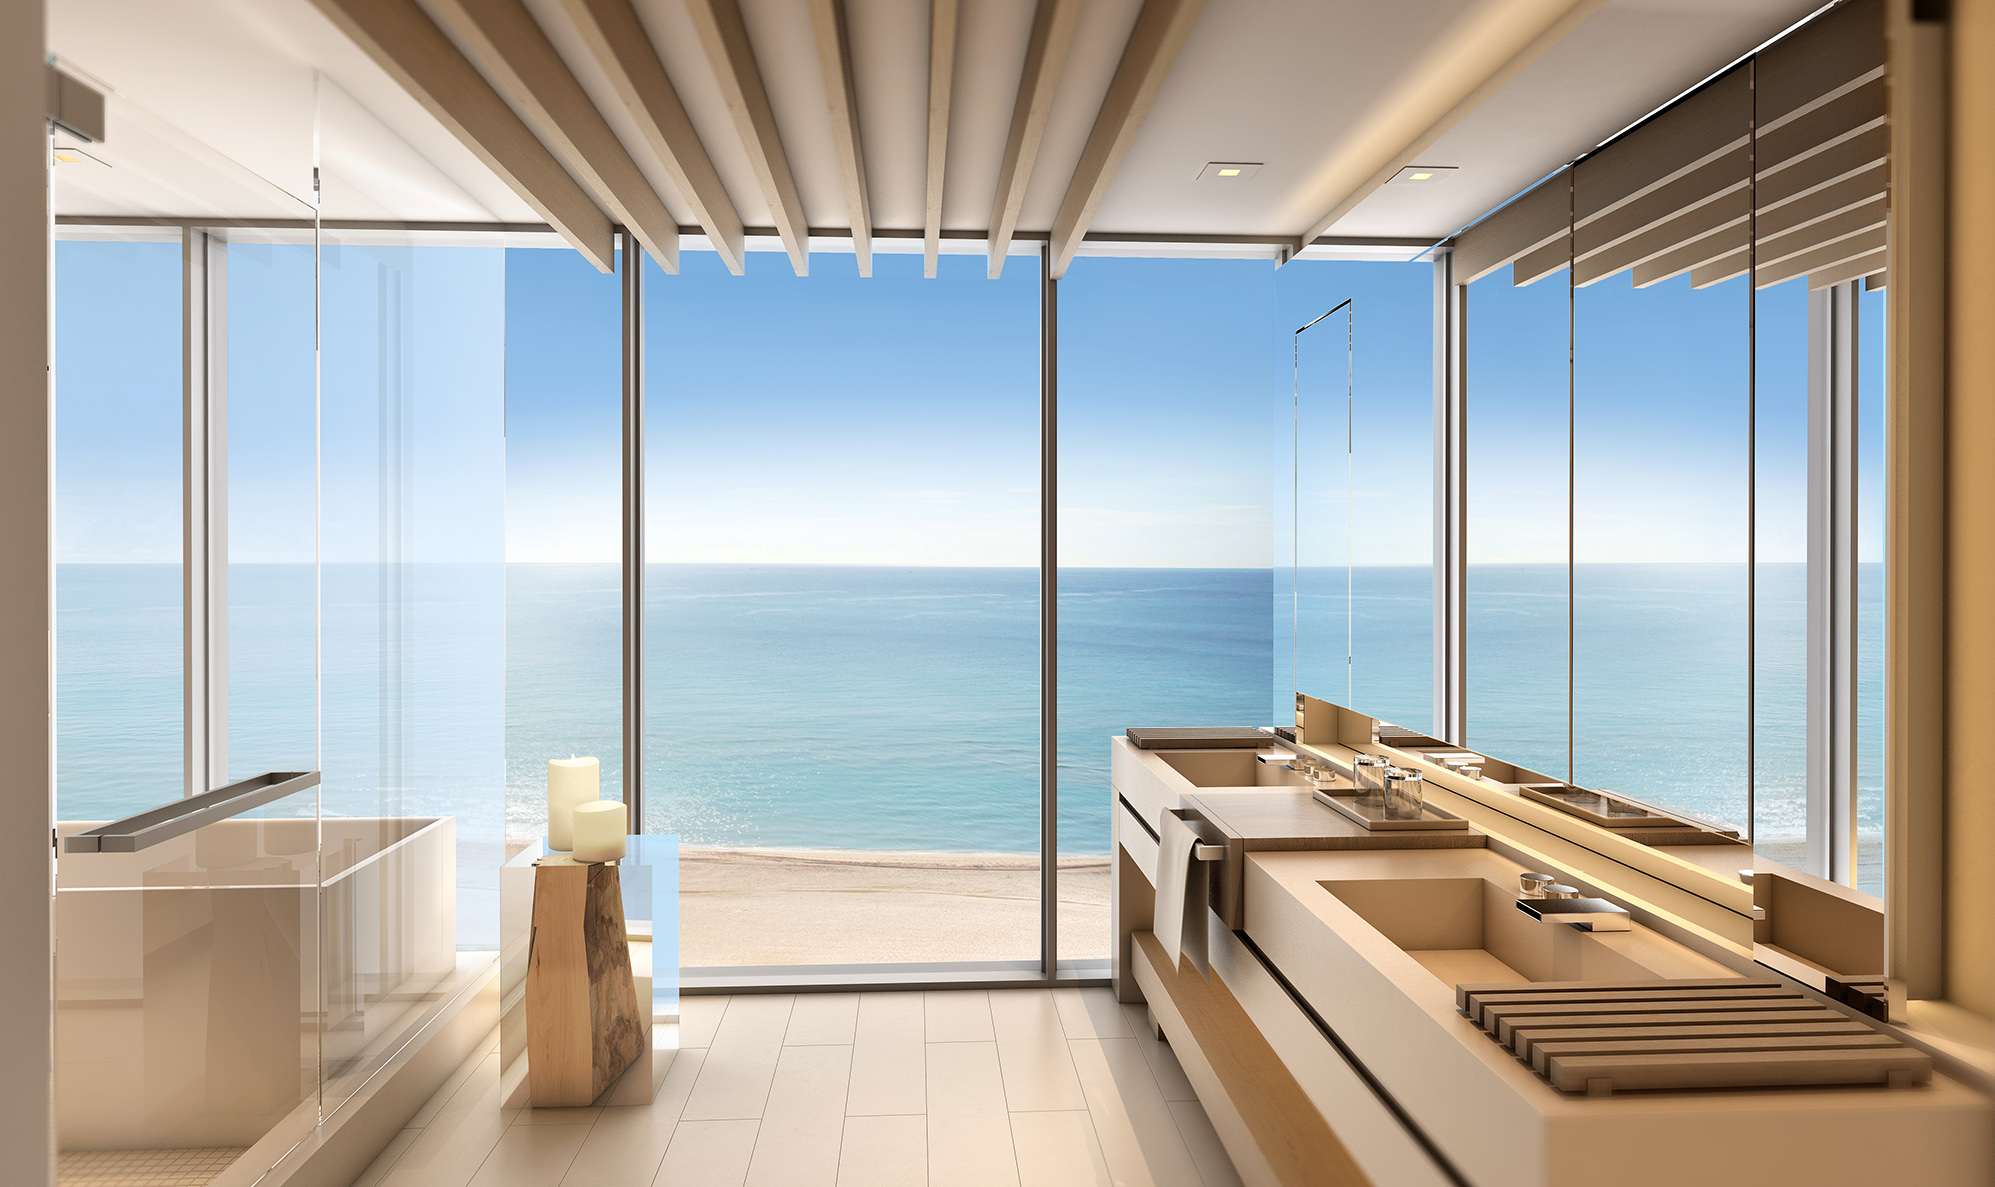 Nature bathroom design - Debora Aguiar Design Miami Beachfront Condos 1 Hotel